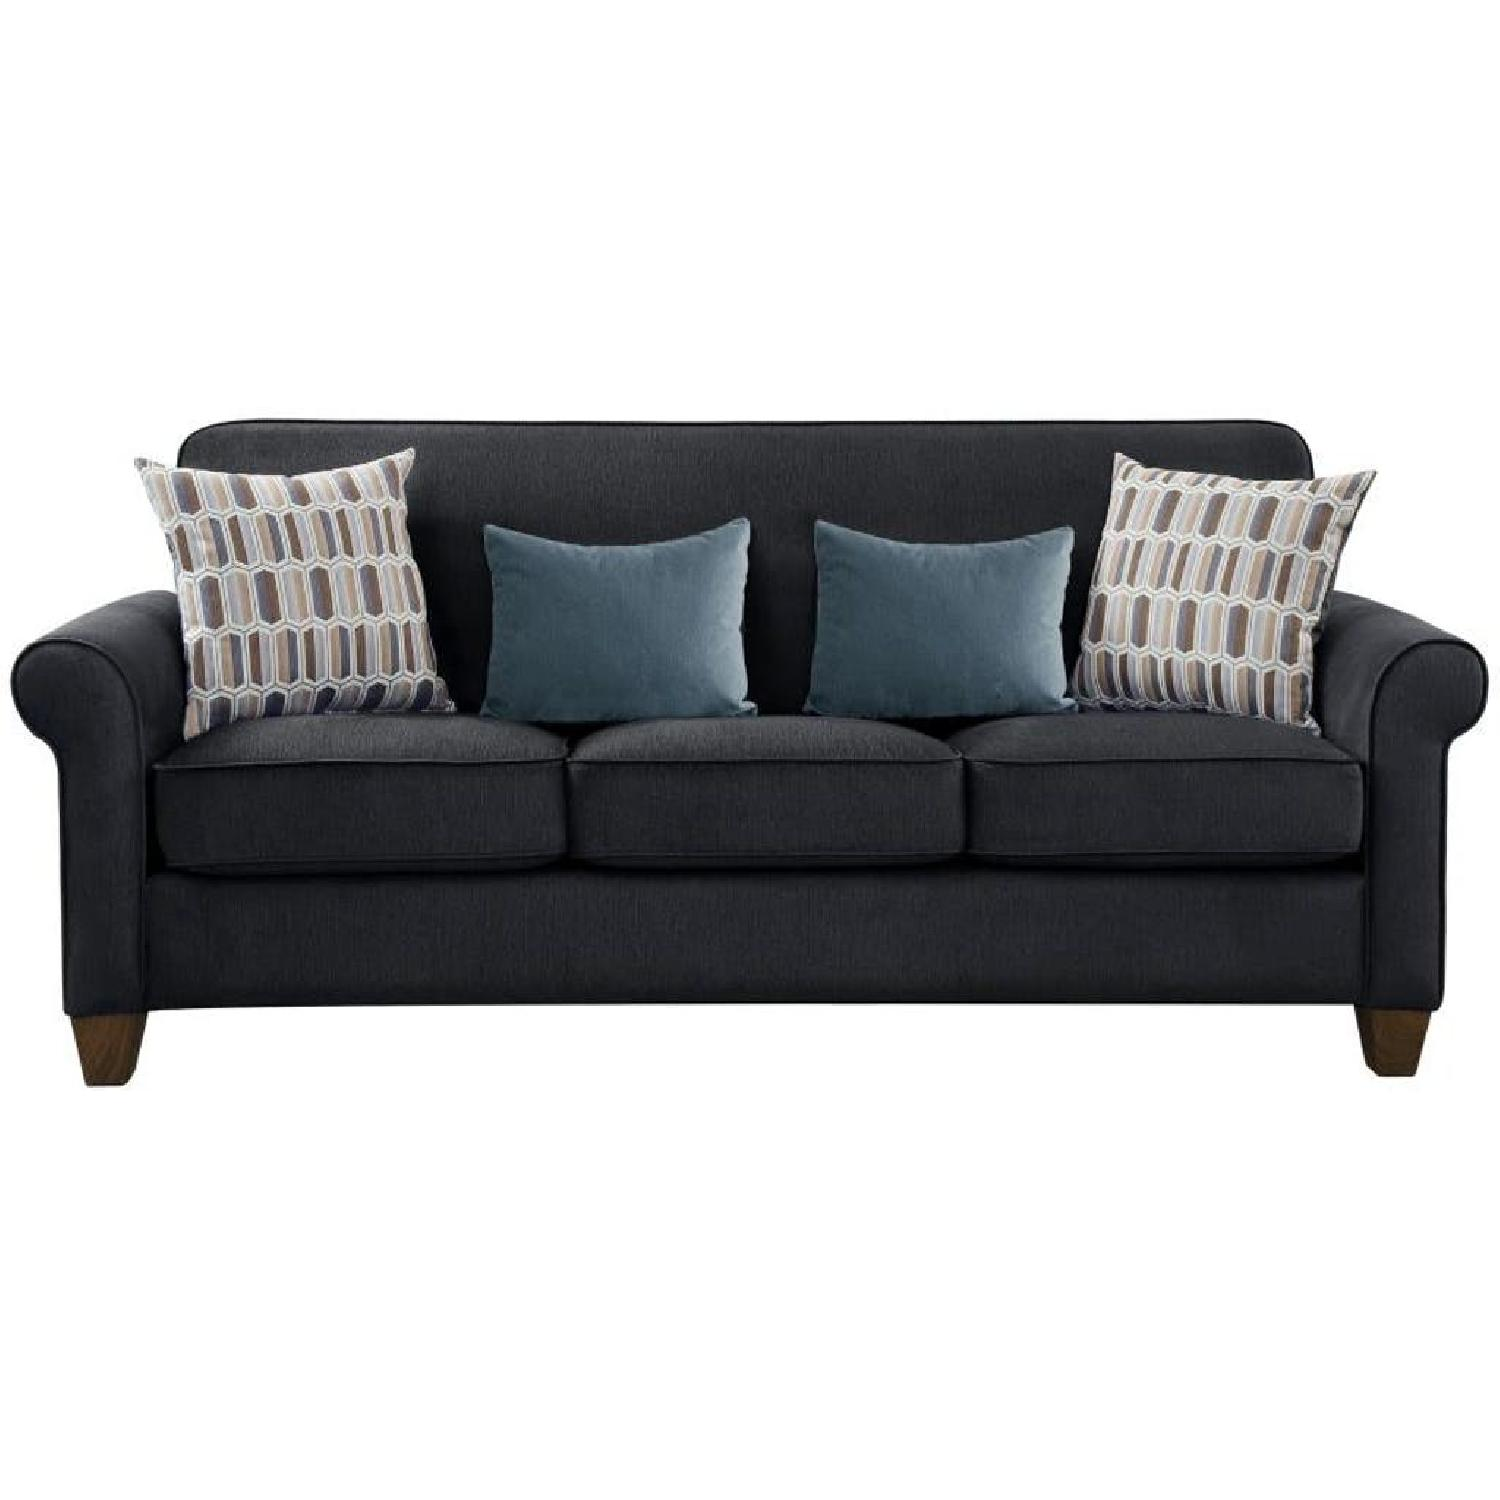 Rolled Arm Fabric Sofa in Graphite w/ Accent Pillows